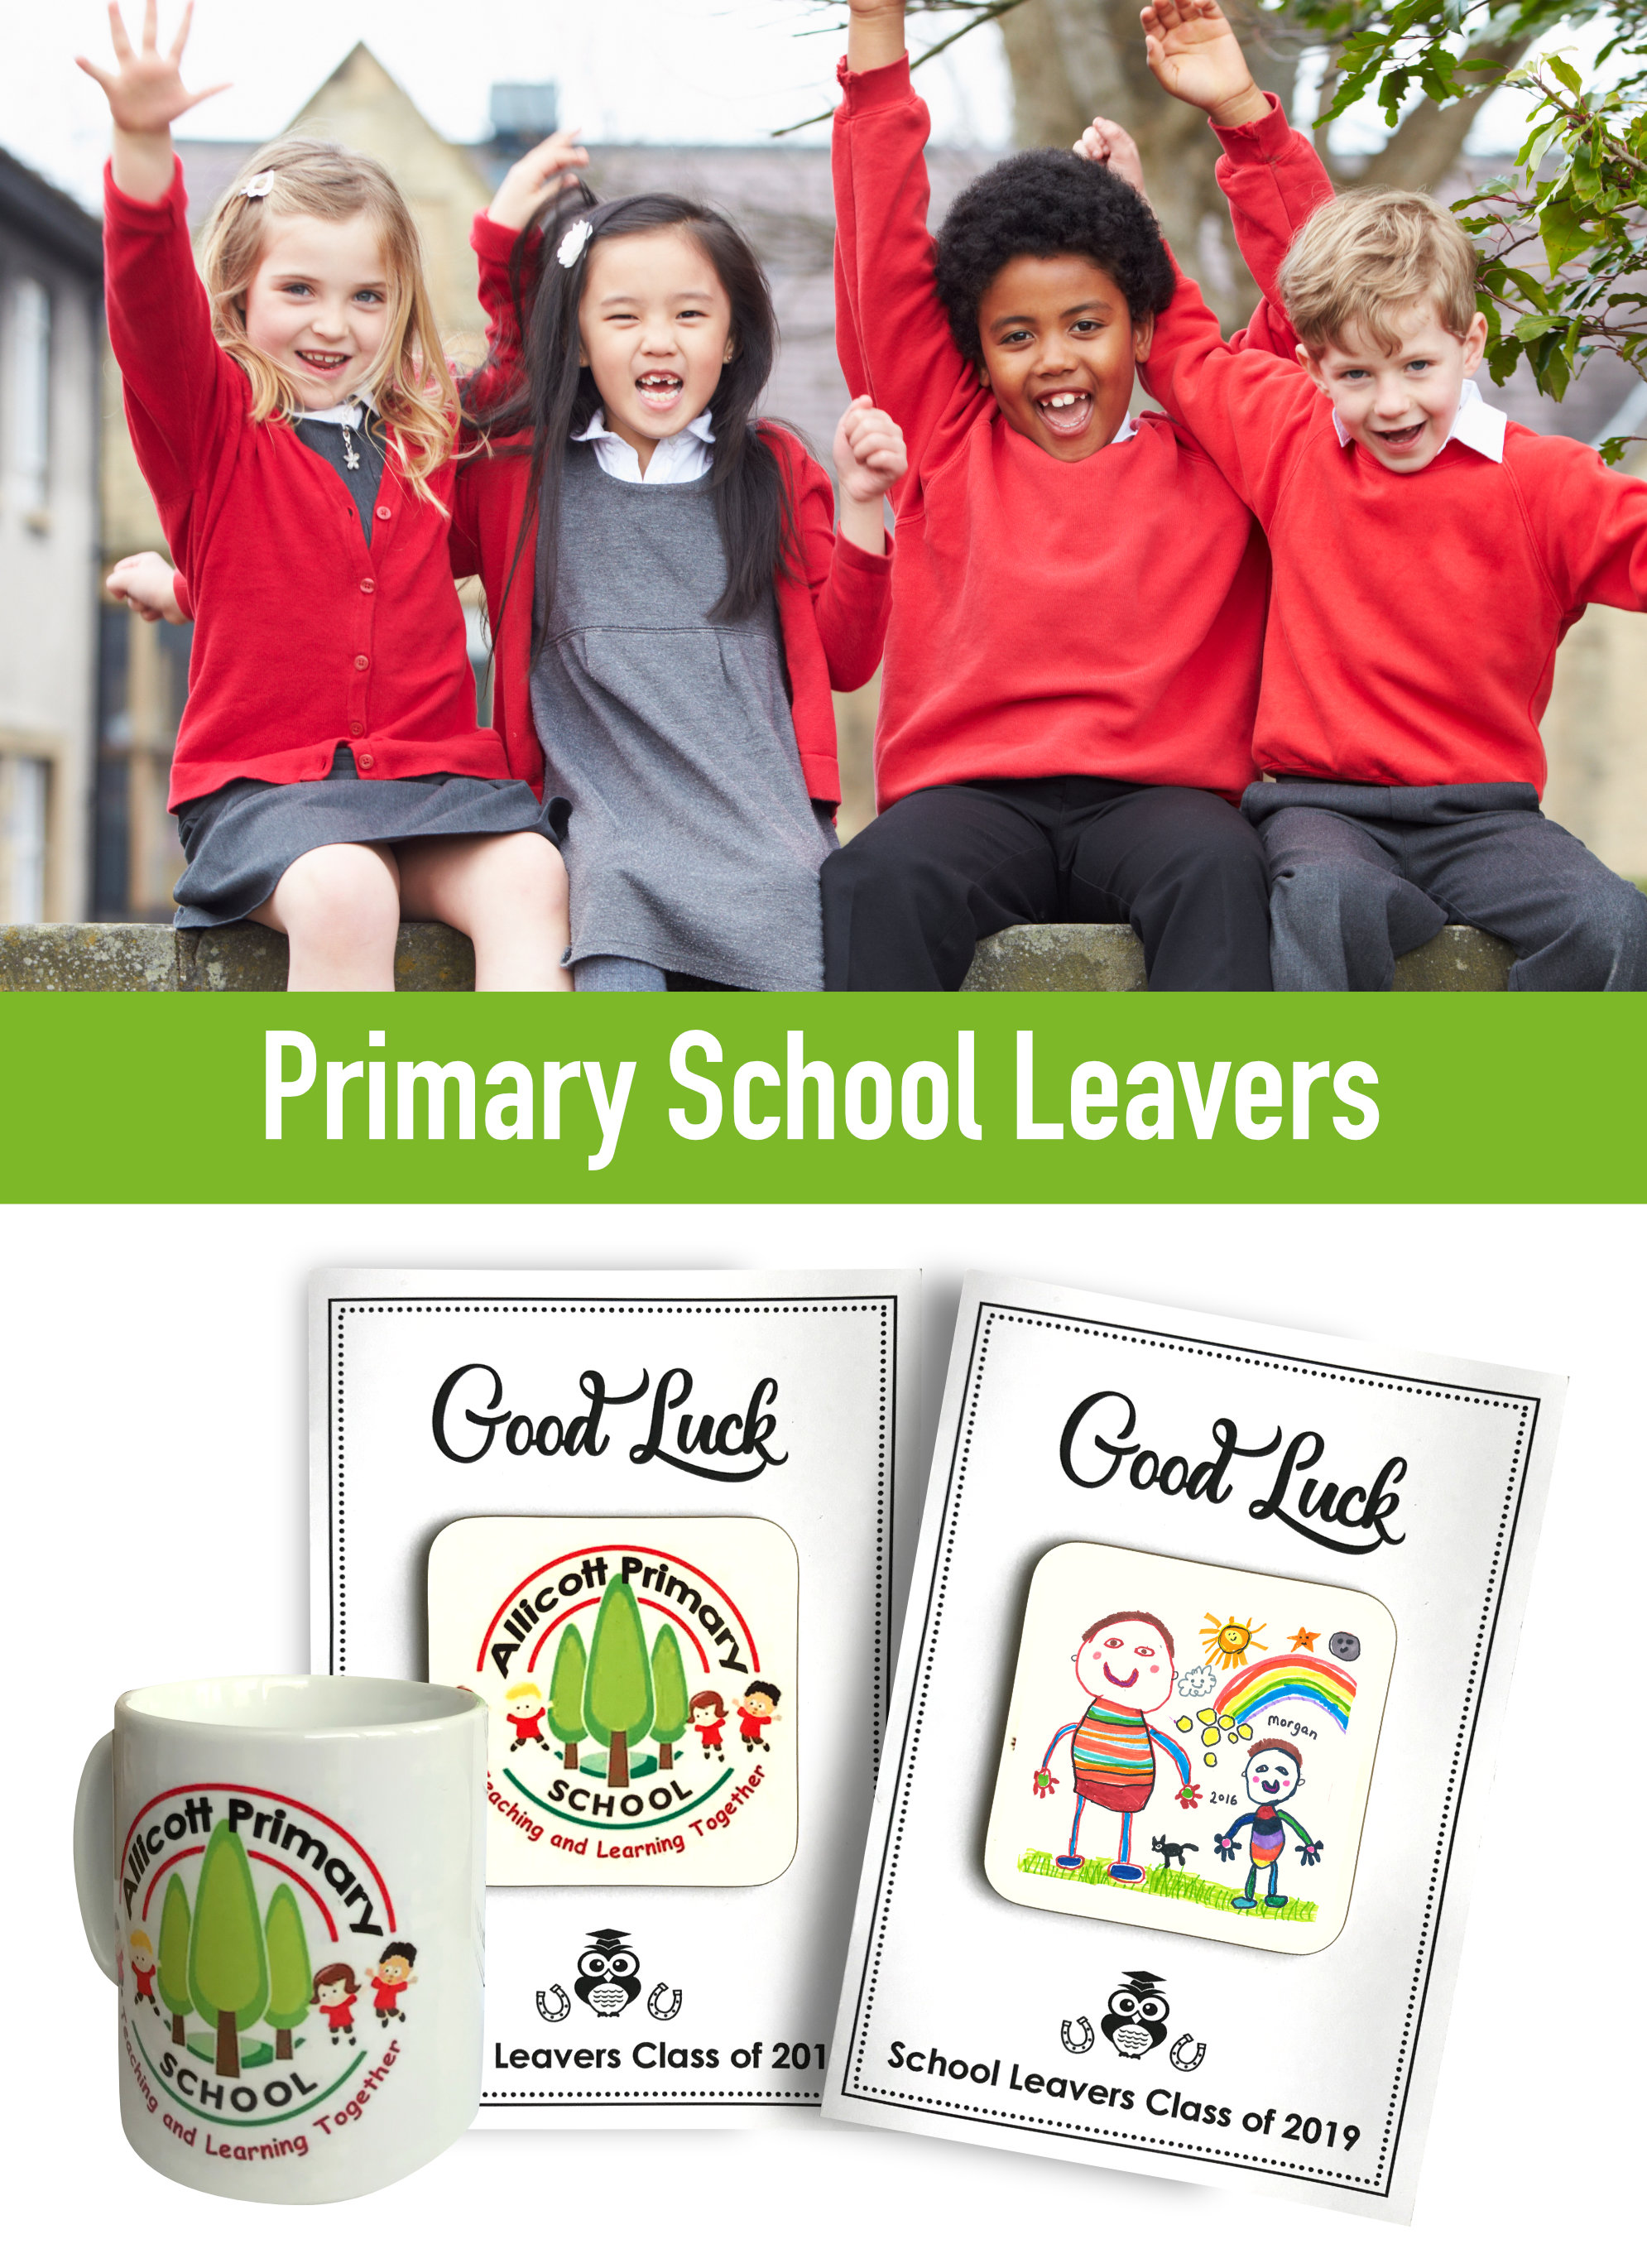 primary-school-leavers-gifts@2x.jpg